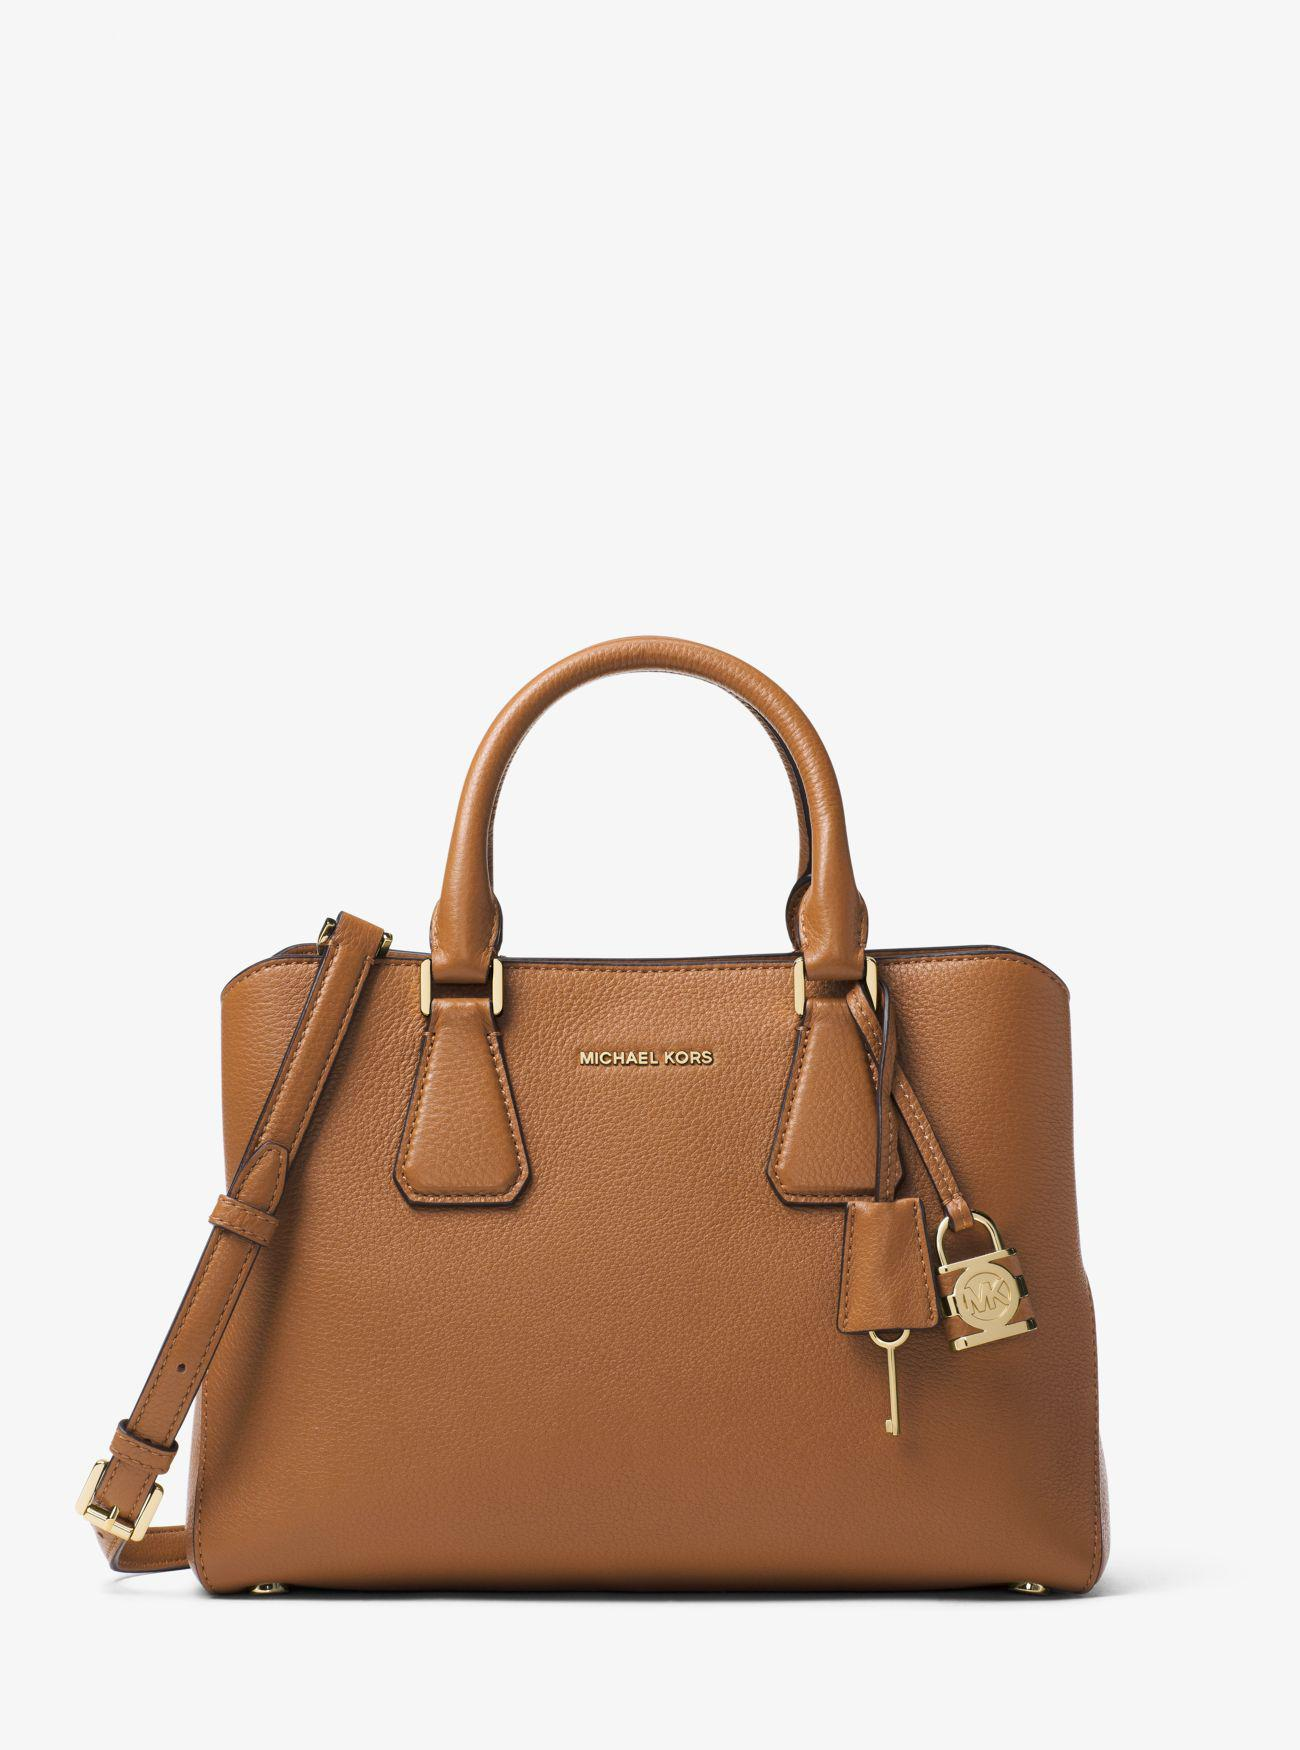 68a33682a76c Lyst - Michael Kors Camille Leather Satchel in Brown